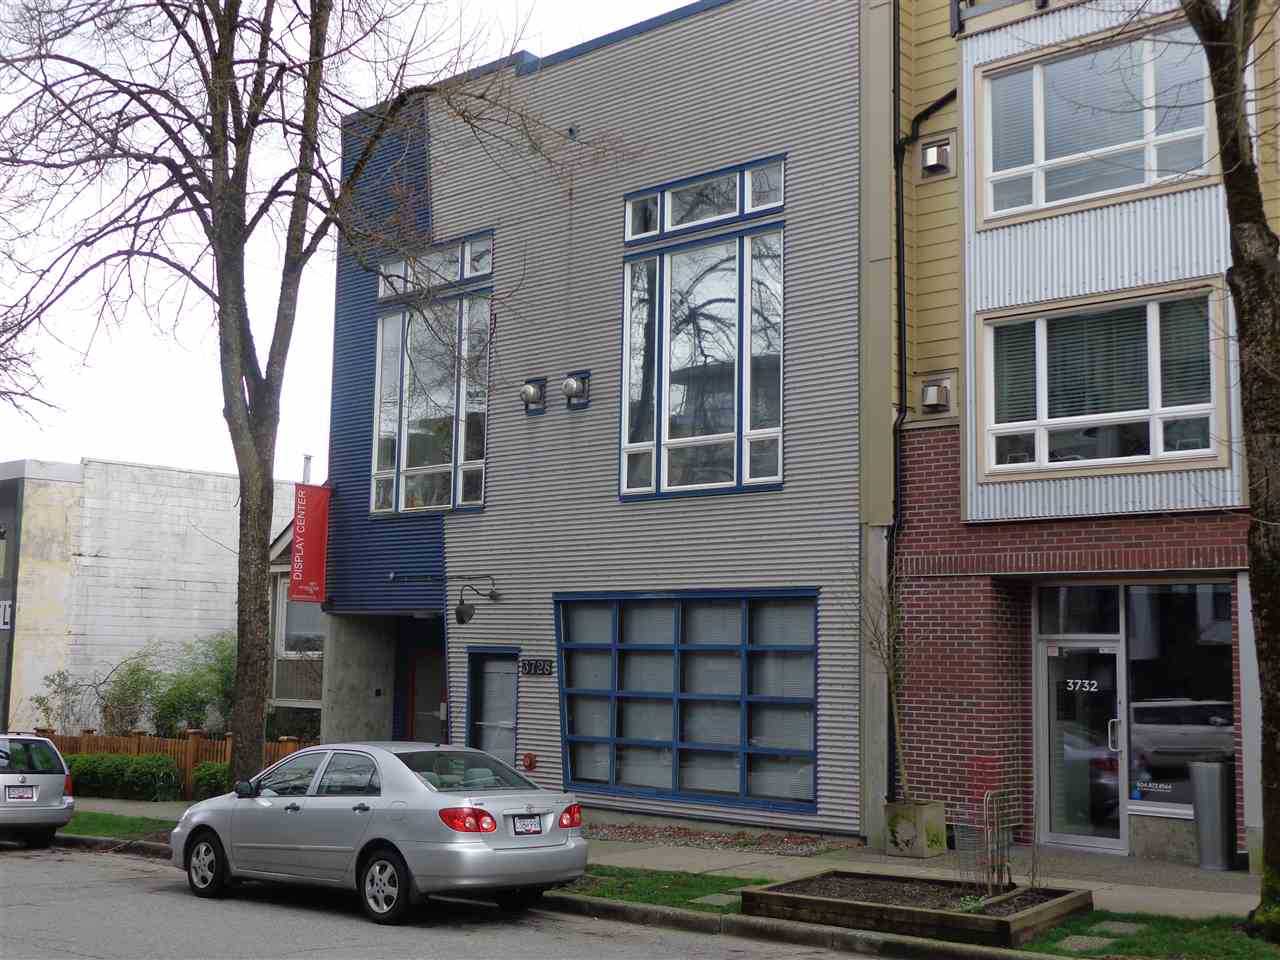 Main Photo: 3 3726 COMMERCIAL STREET in Vancouver: Victoria VE Condo for sale (Vancouver East)  : MLS® # R2037396